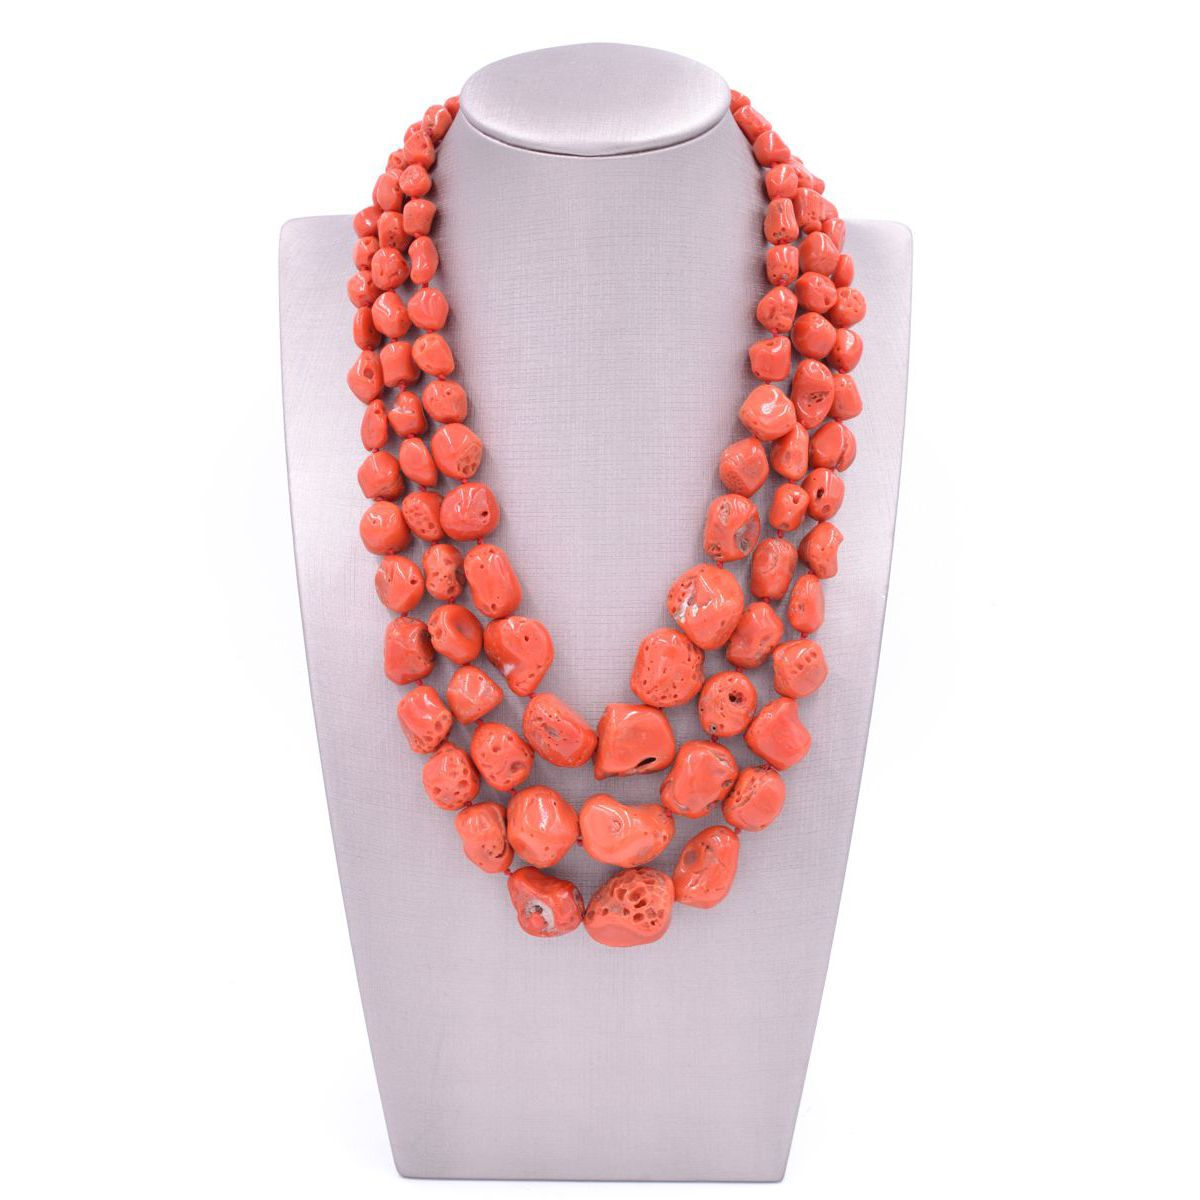 Three-strand Coral Necklace Red BRASS Gioielli